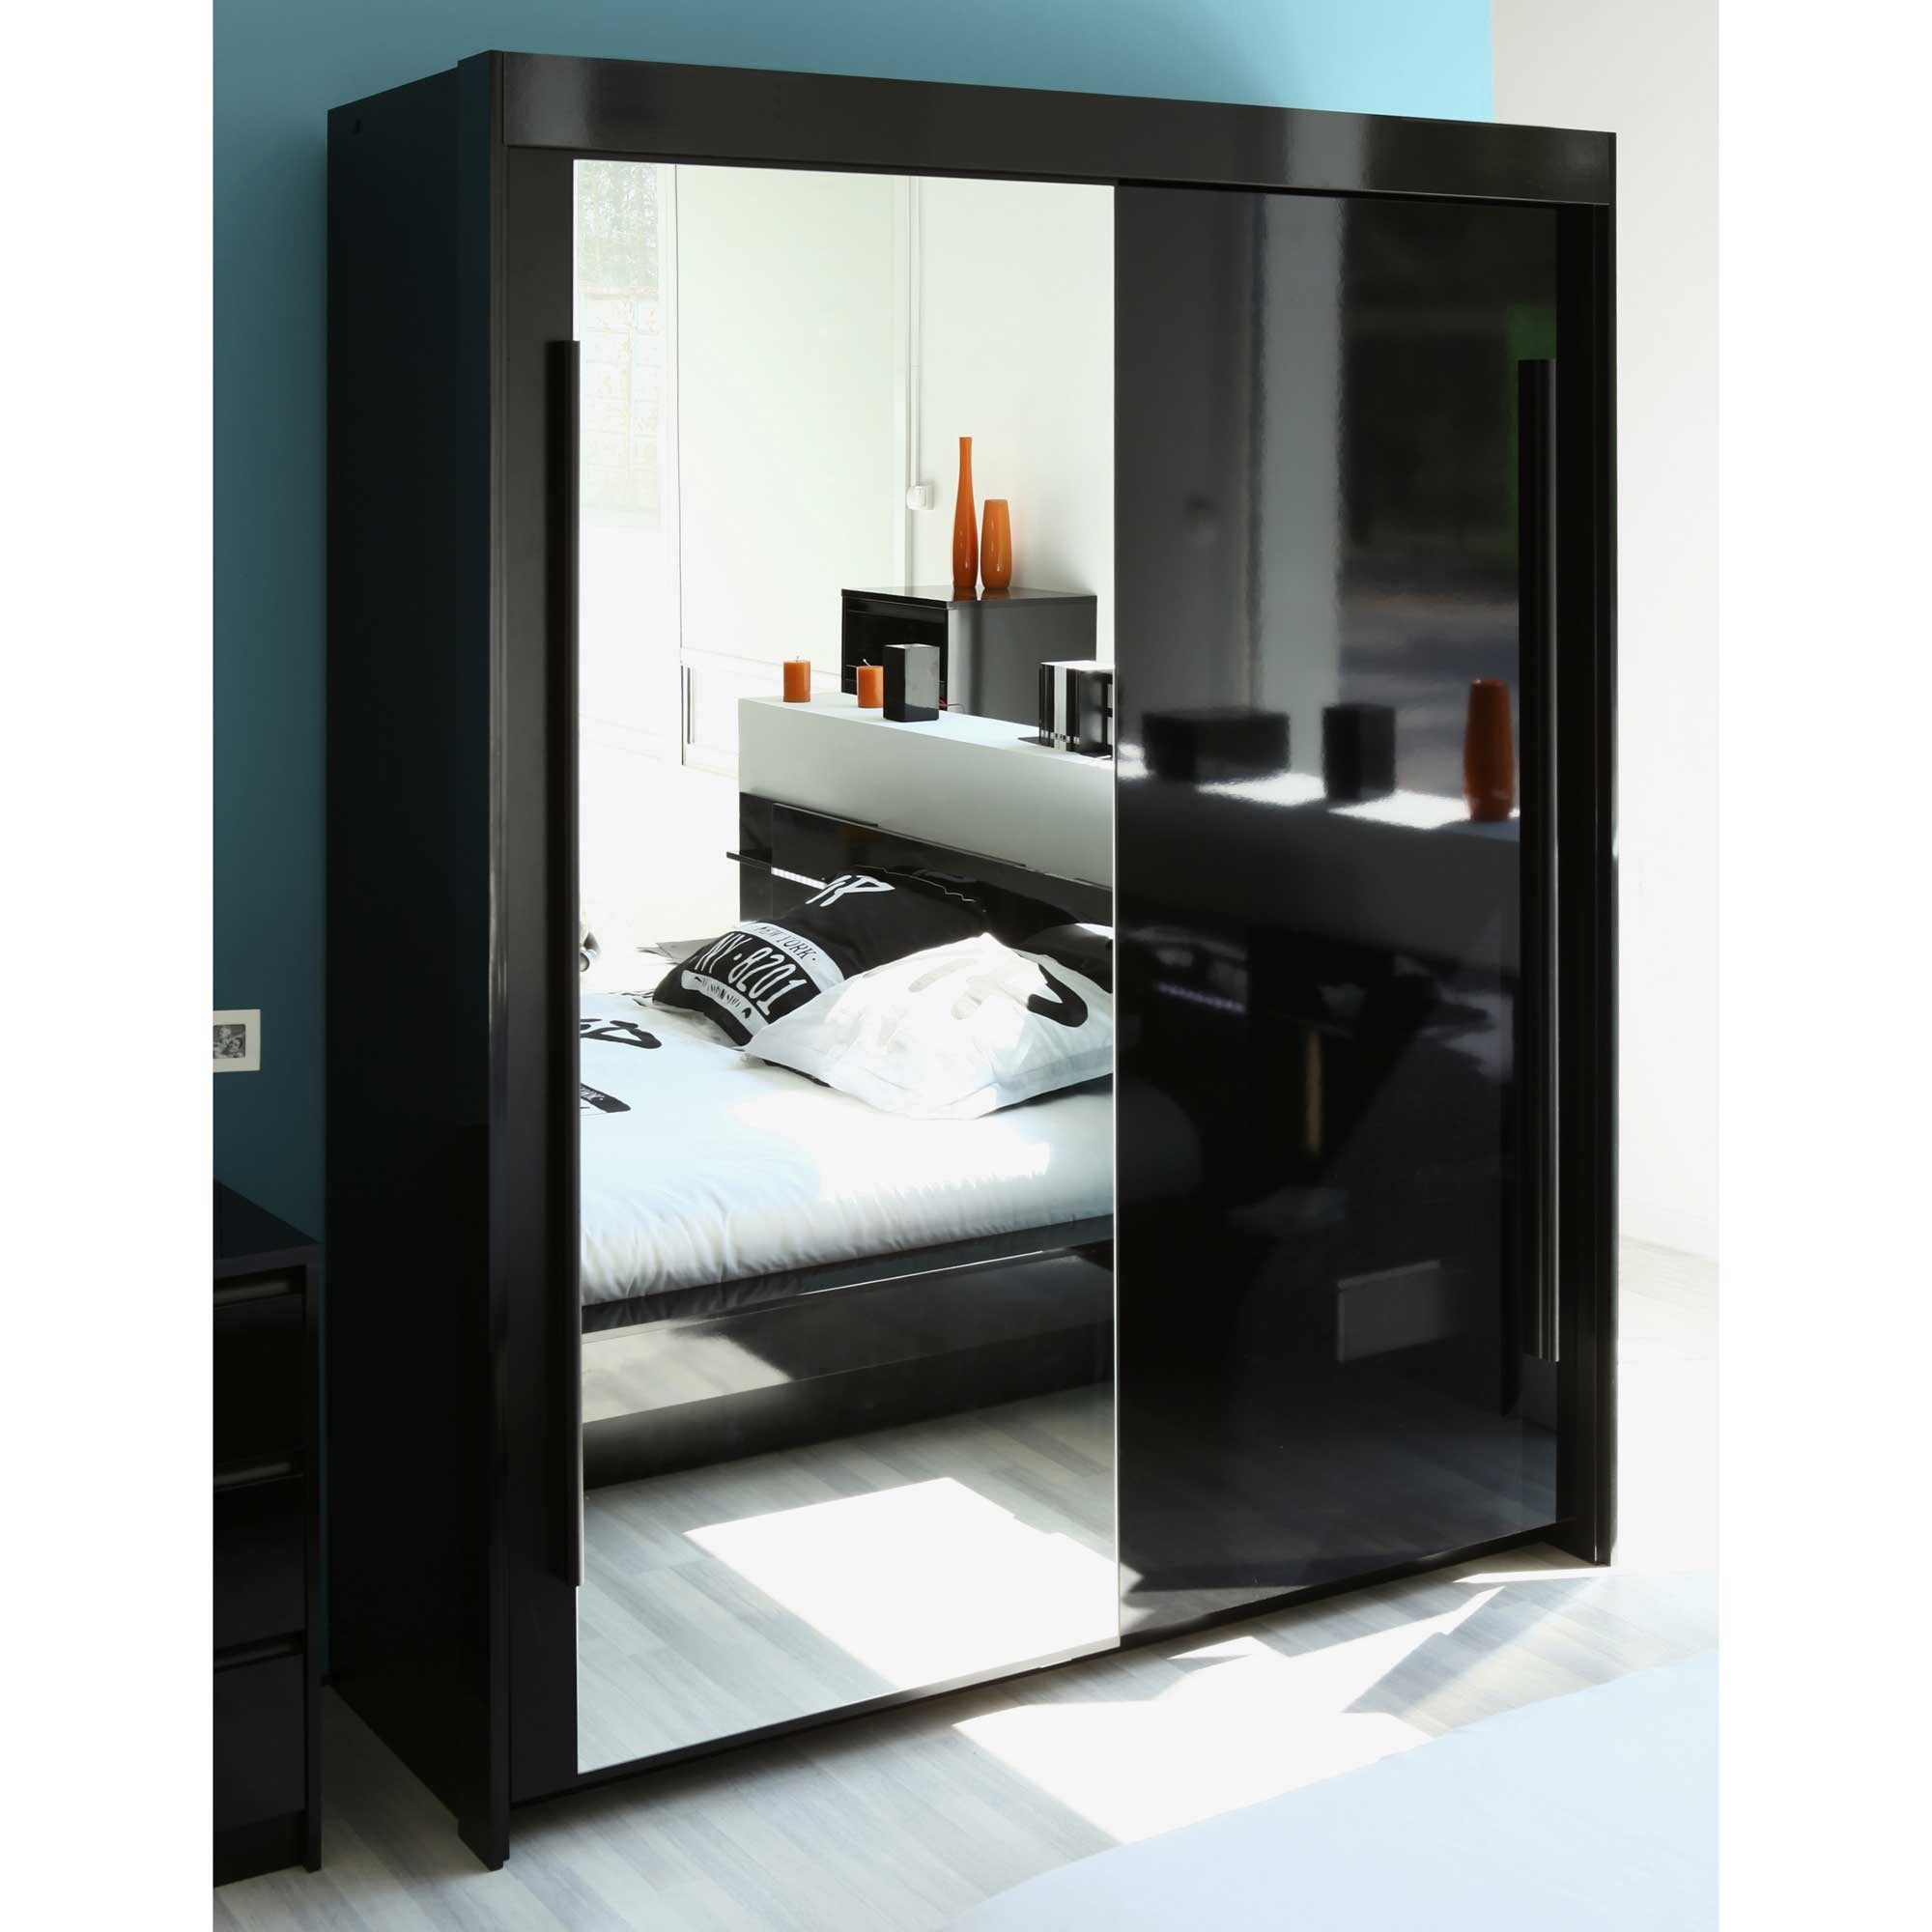 armoire chambre avec miroir des id es novatrices sur la conception et le mobilier de maison. Black Bedroom Furniture Sets. Home Design Ideas